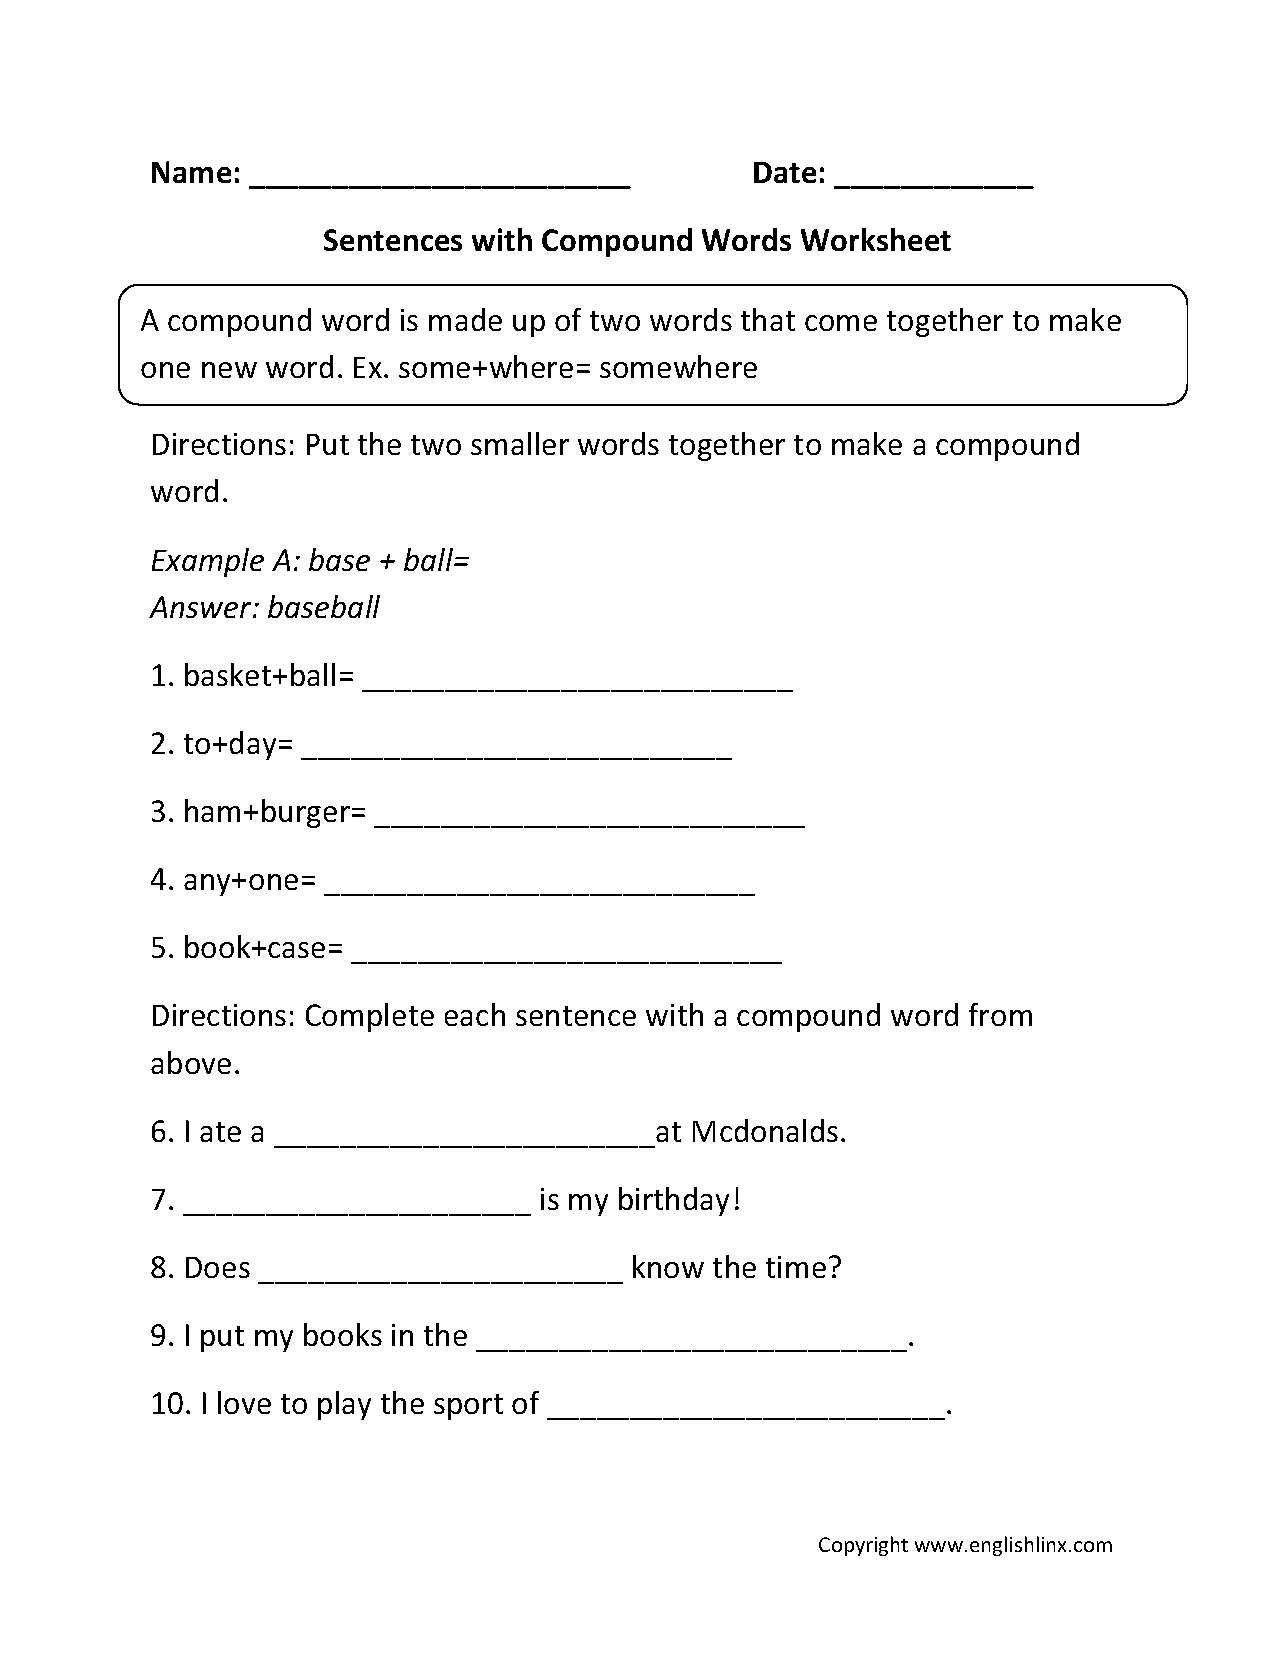 Cutting Sentence Building Worksheet